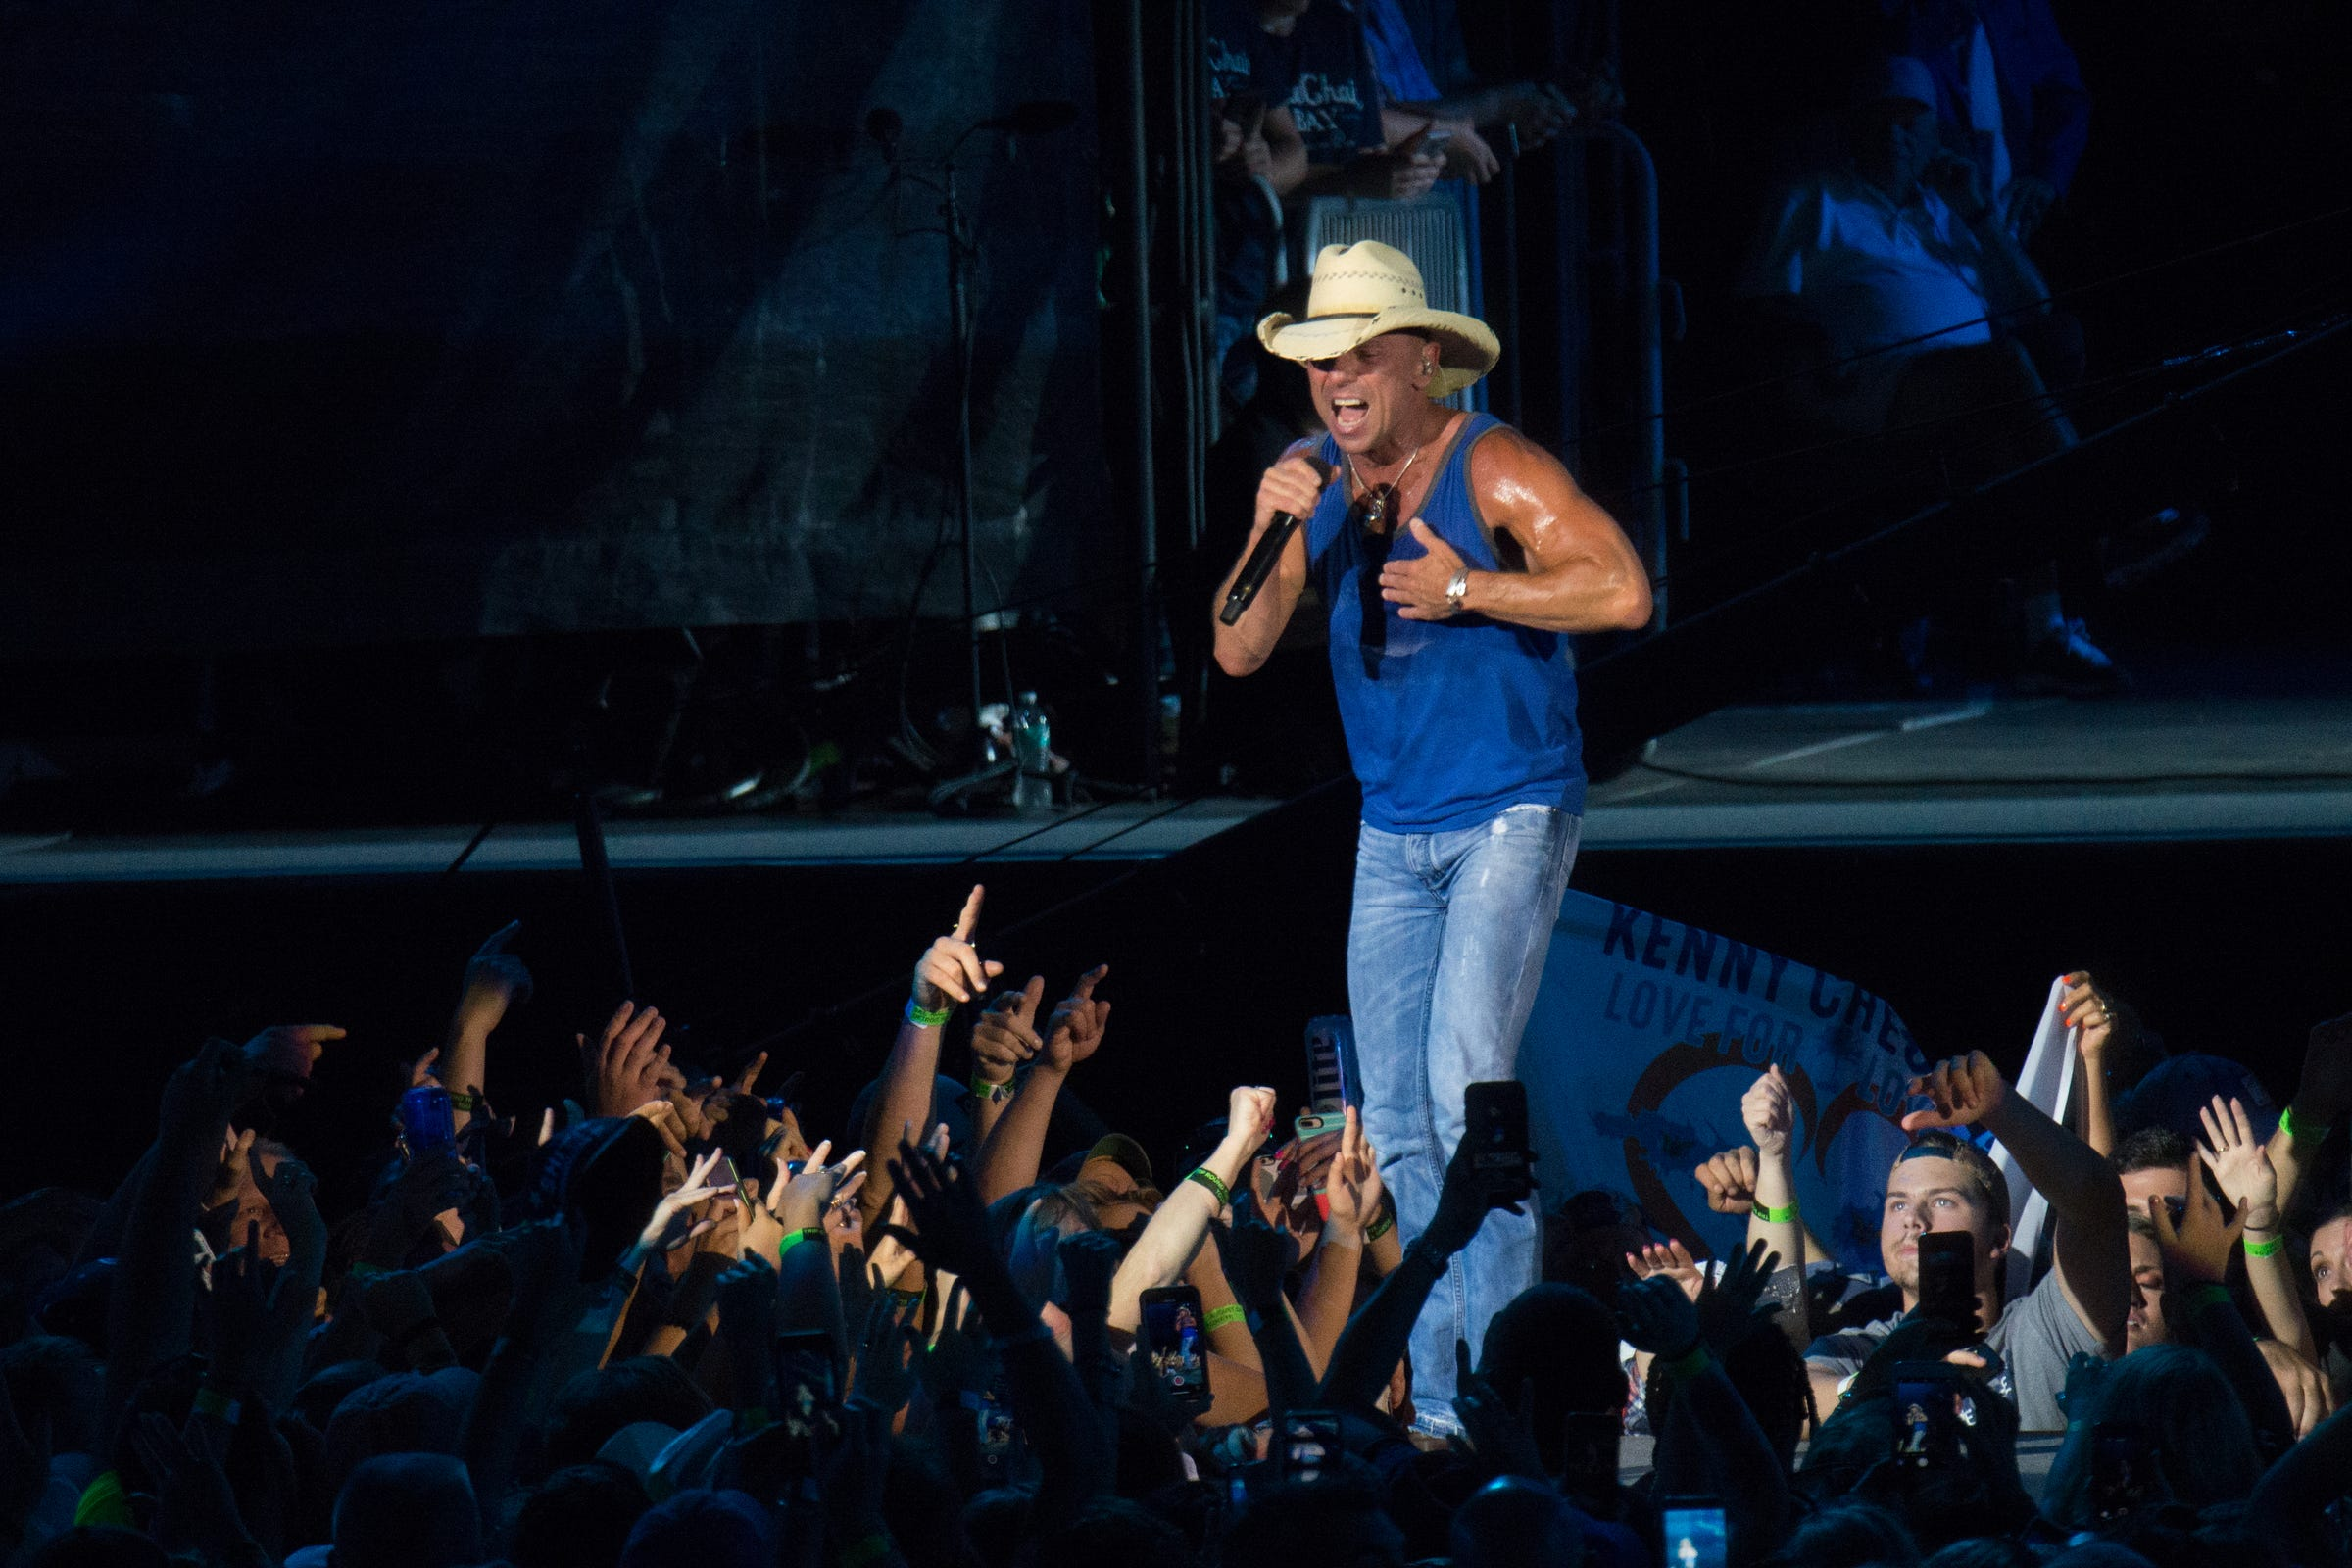 Kenny Chesney postpones summer tour, including Ford Field date; aims to reboot in 2021